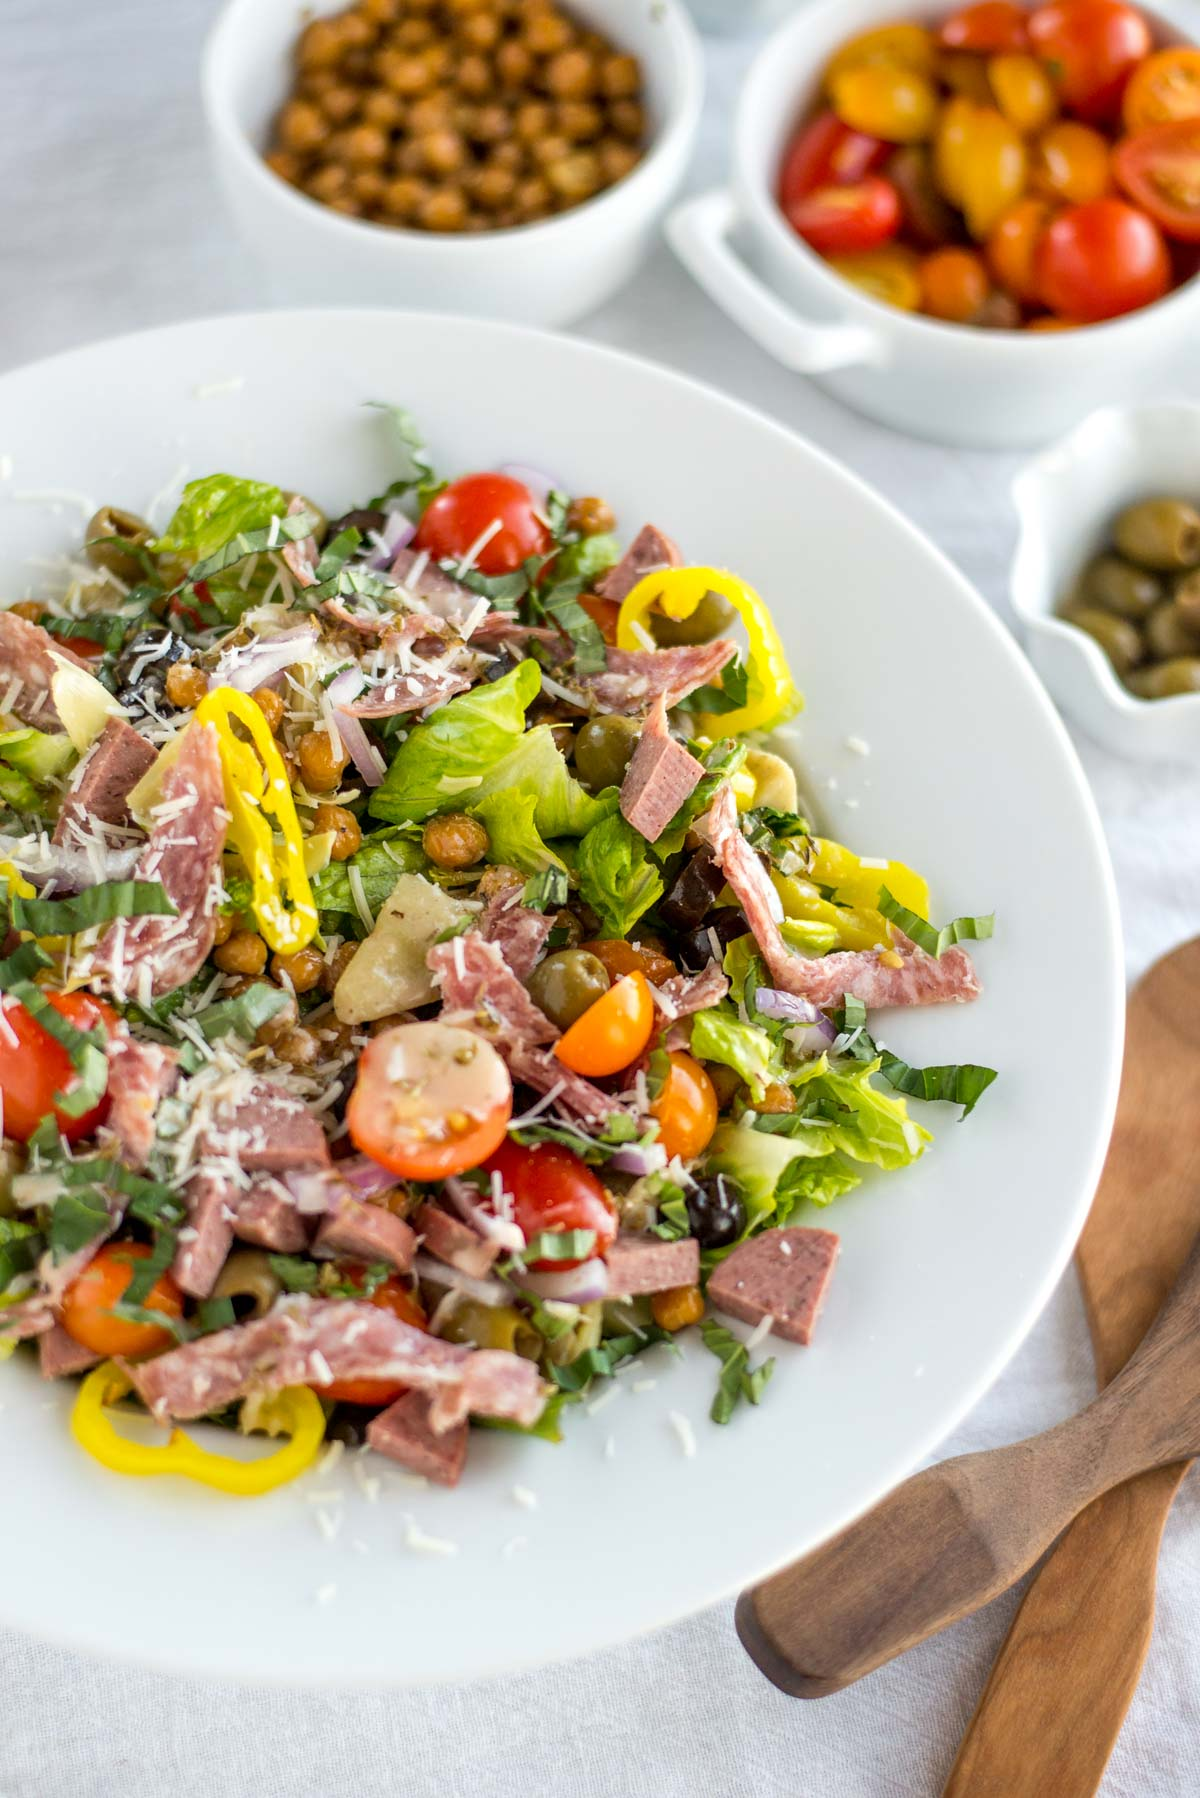 Looking for an easy and clean weeknight dinner? Look no further than this easy, family friendly Italian chopped salad.